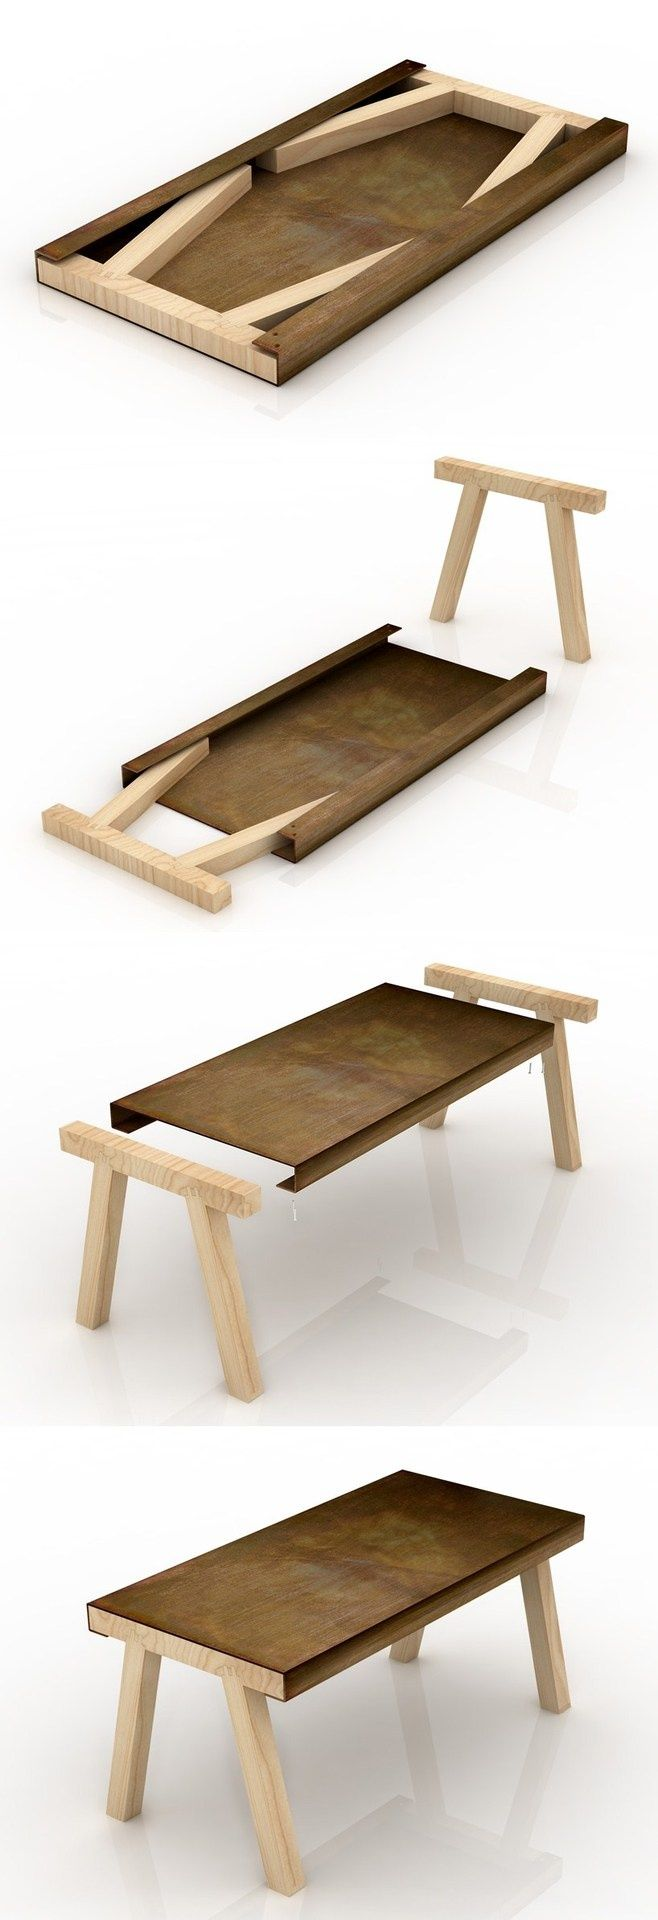 Il Tavolo Mastro / Studio Gumdesign   This is such a cool idea. Cant manufacture a metal top but could it be adapted to wood top with metal chanel to slide legs into? hmm something to muse